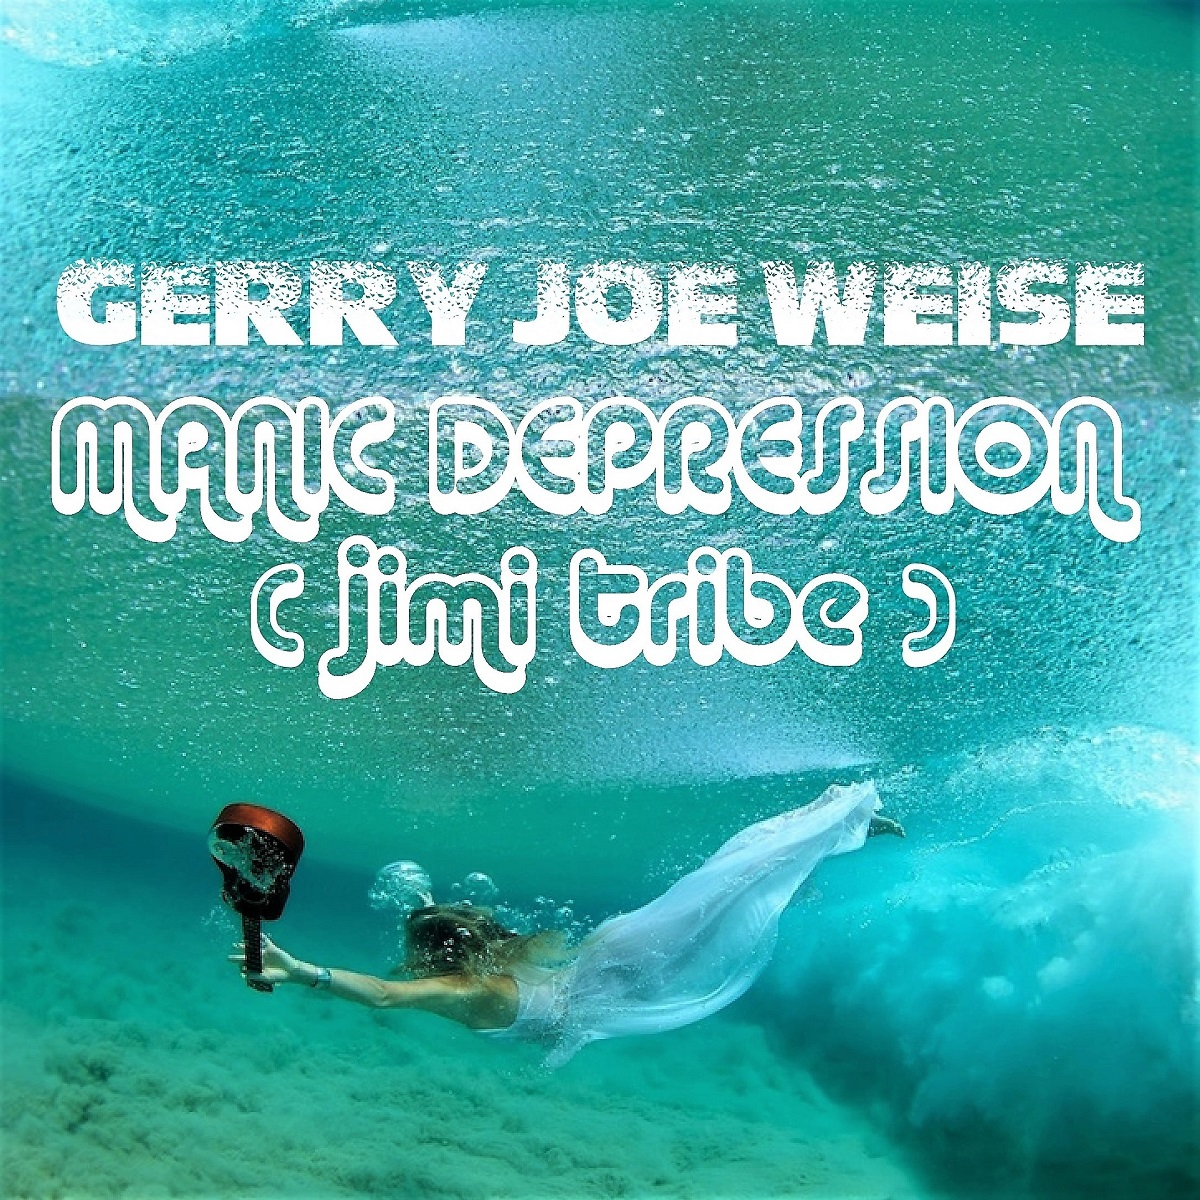 Manic Depression (Jimi Tribe), 2018 single EP